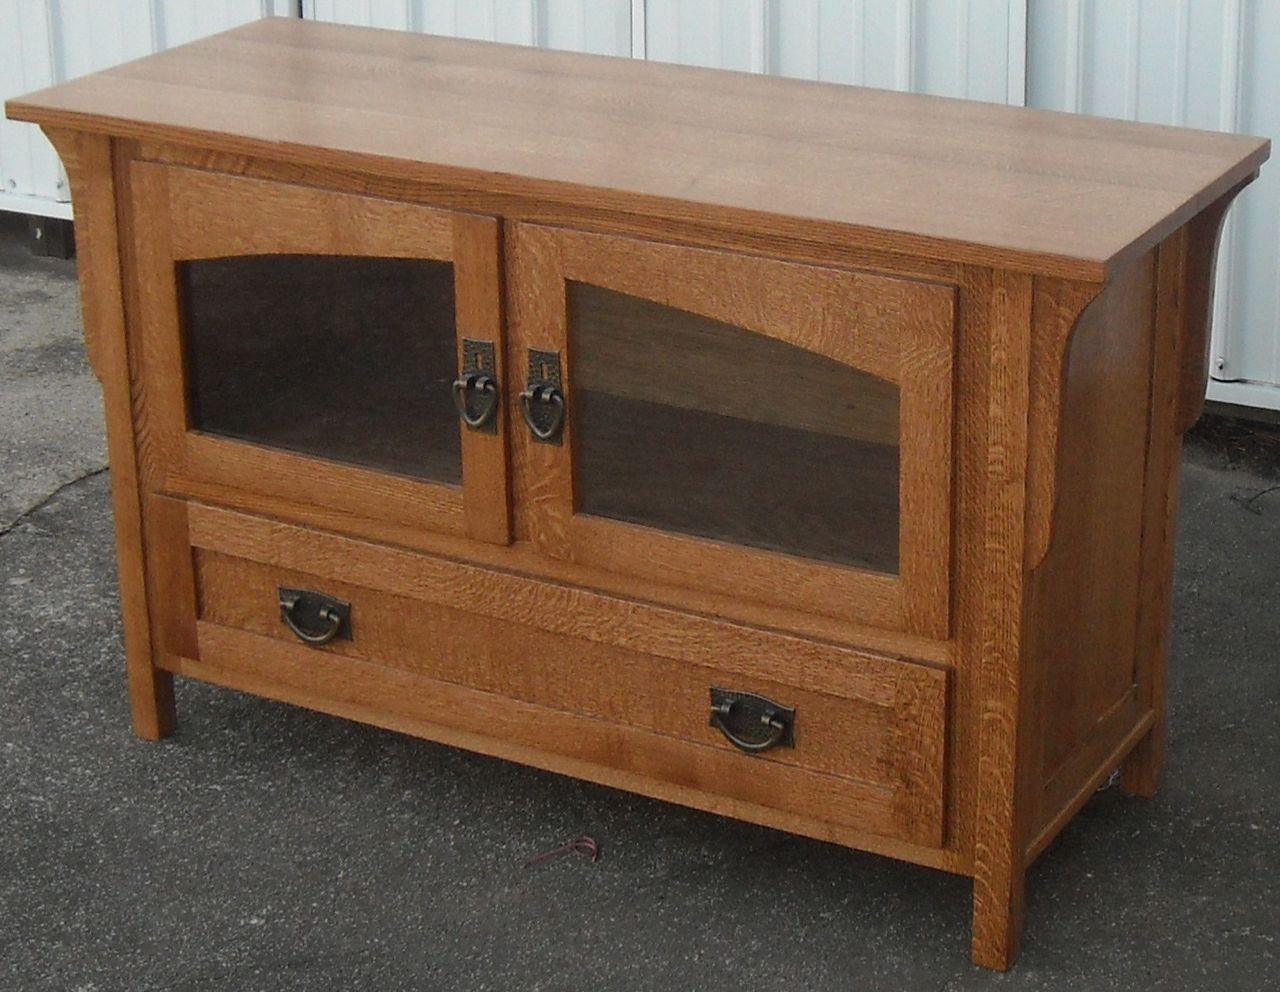 Shed Plans: Mission Style Tv Stand Plans Wooden Plans